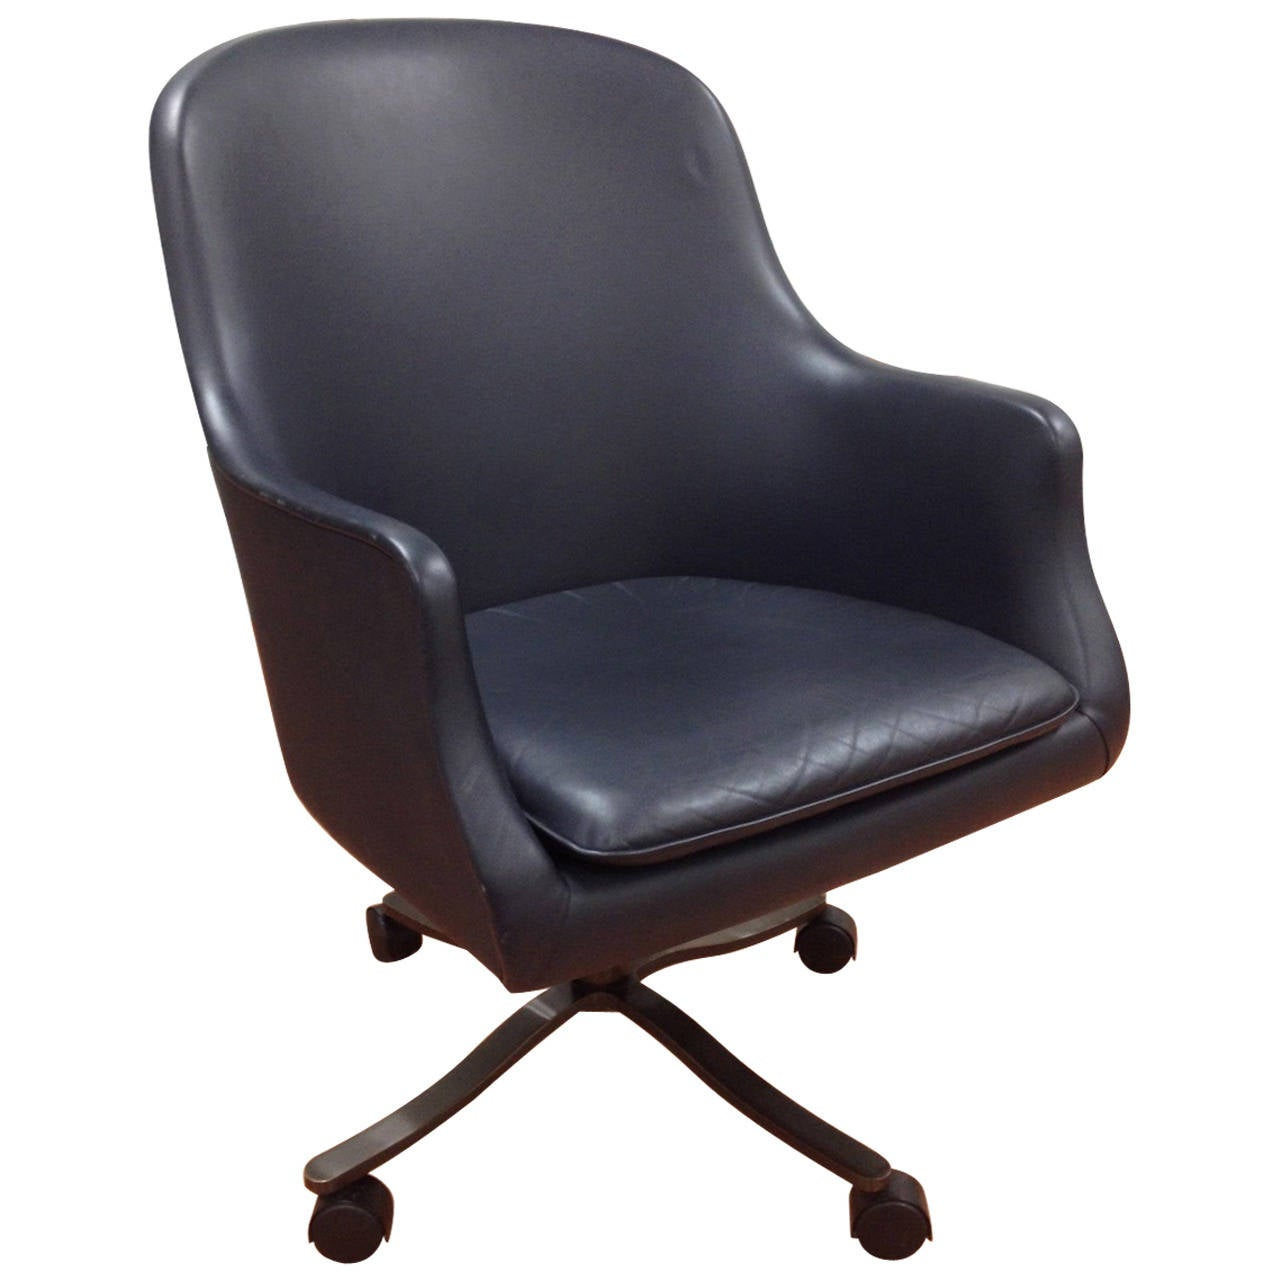 Exceptional Leather Executive Swivel Desk Chair By Nicos